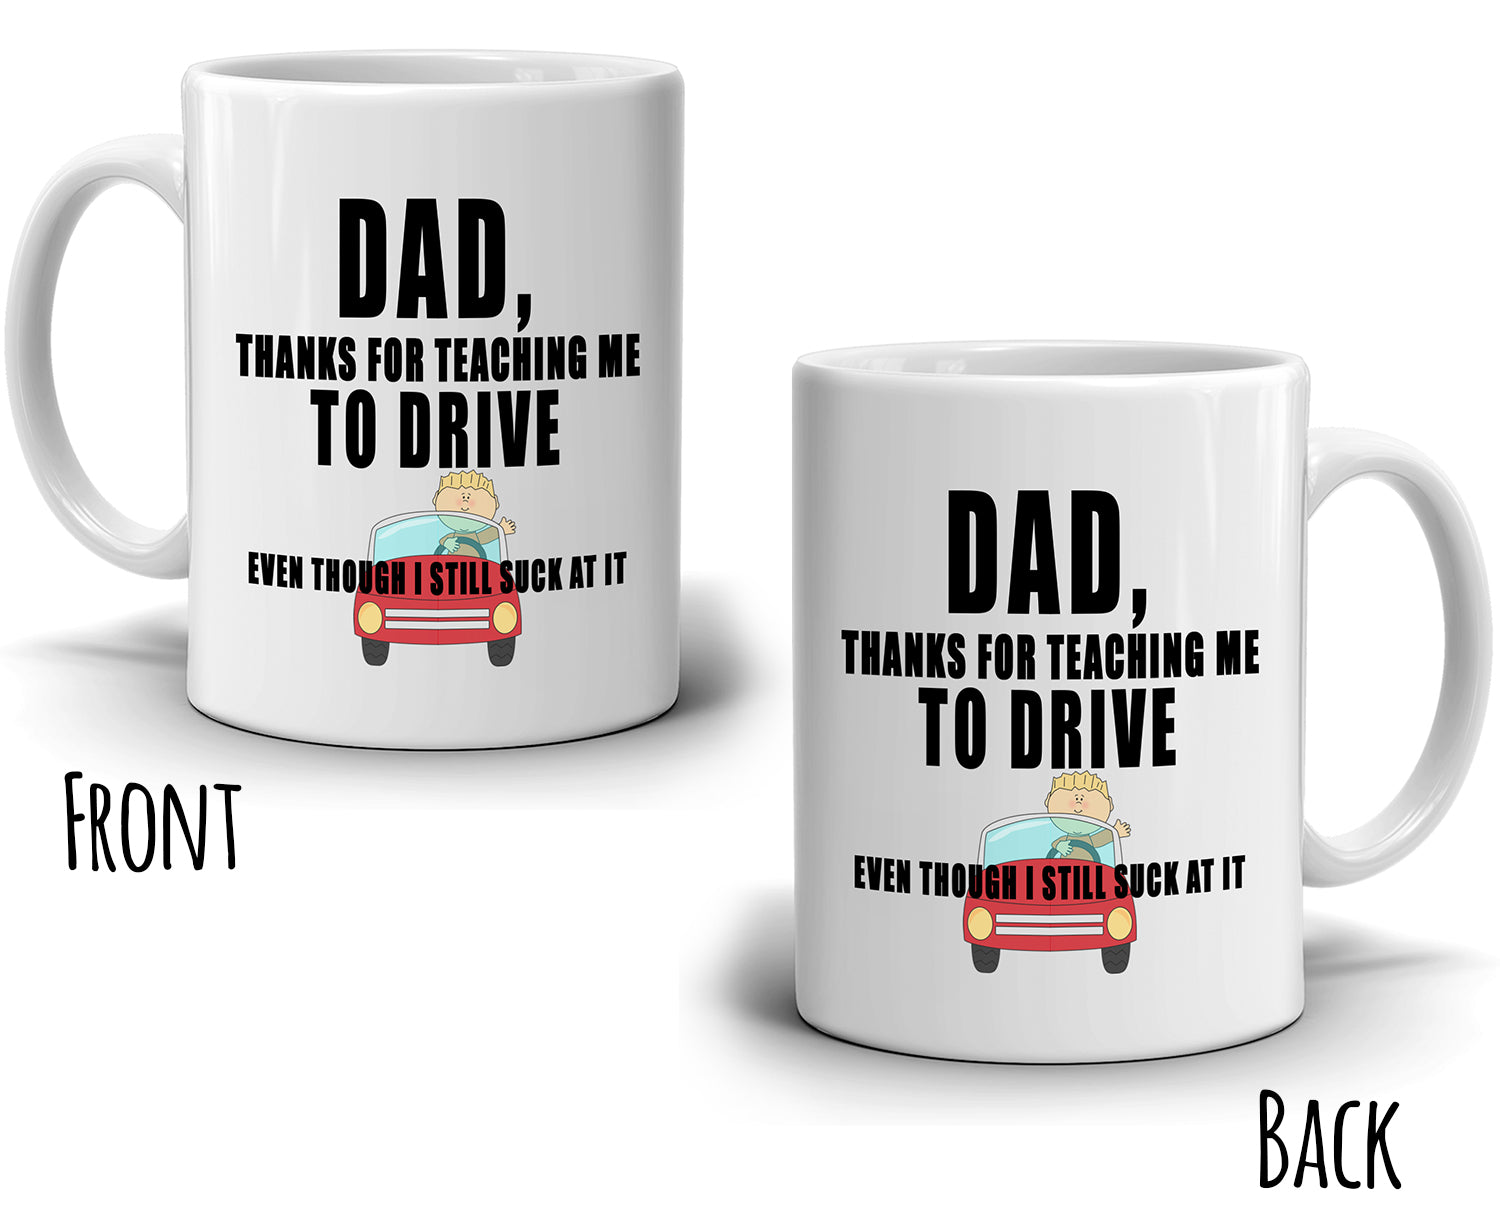 Funny Gag Thank You Dad Birthday Gifts From Son Coffee Mug Printed On Both Sides